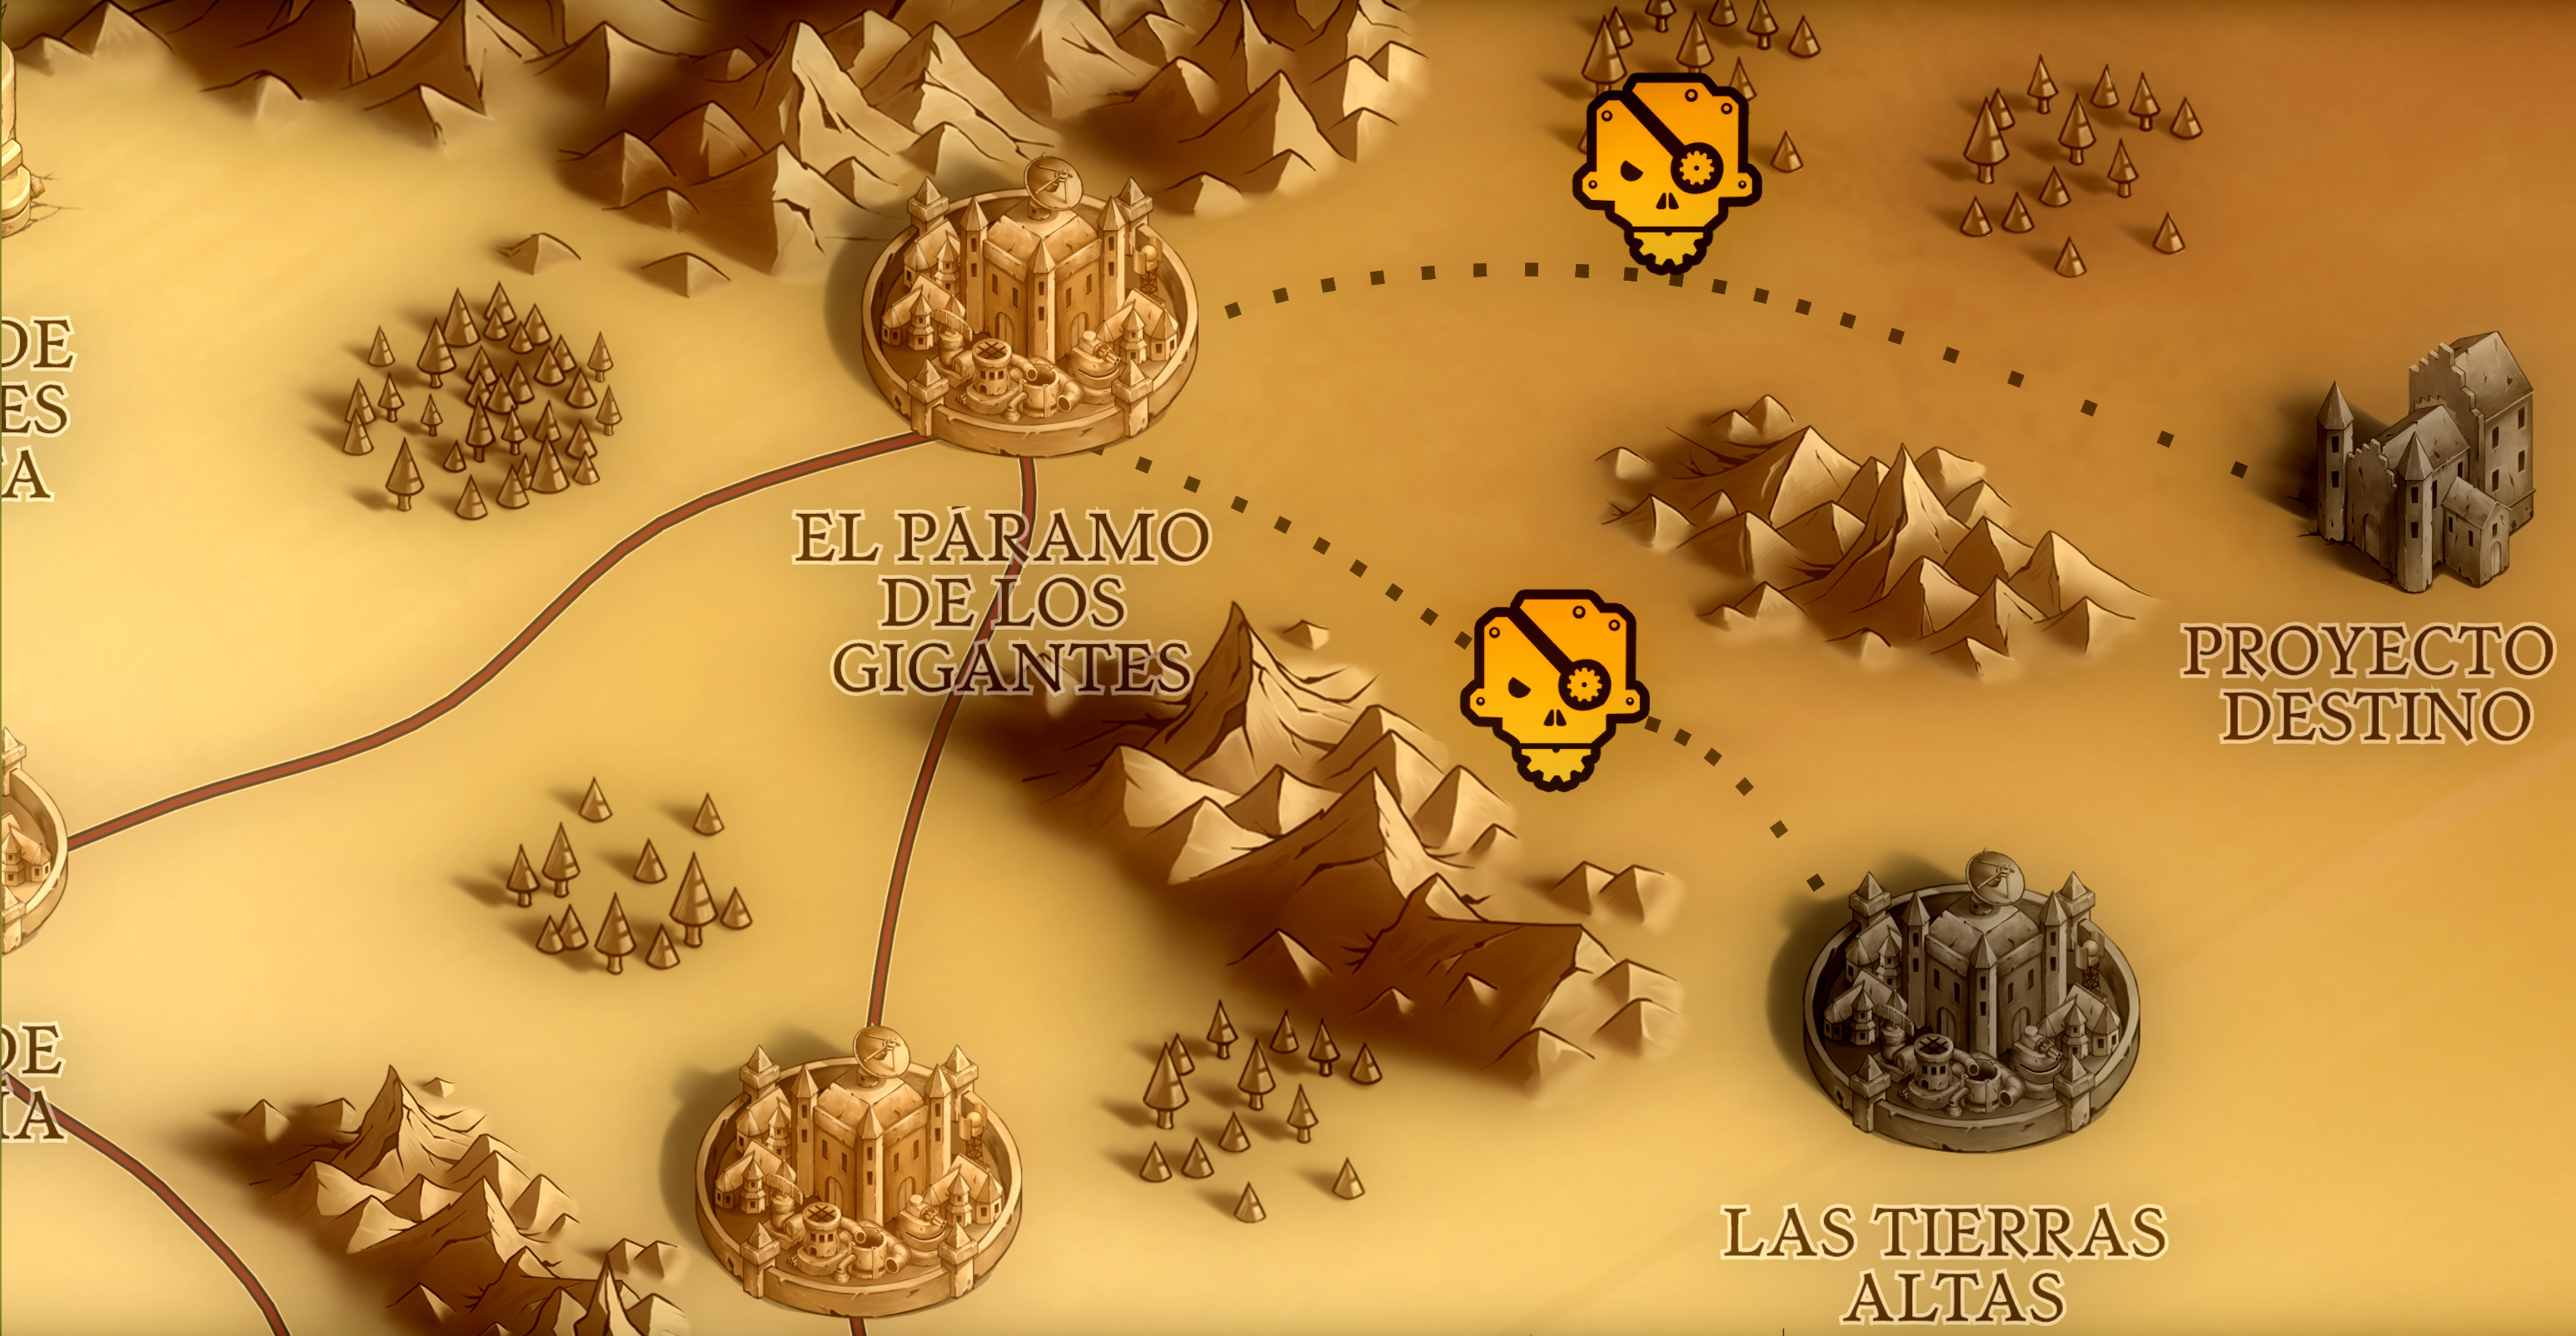 They Are Billions Update: Campaign Development (III) news